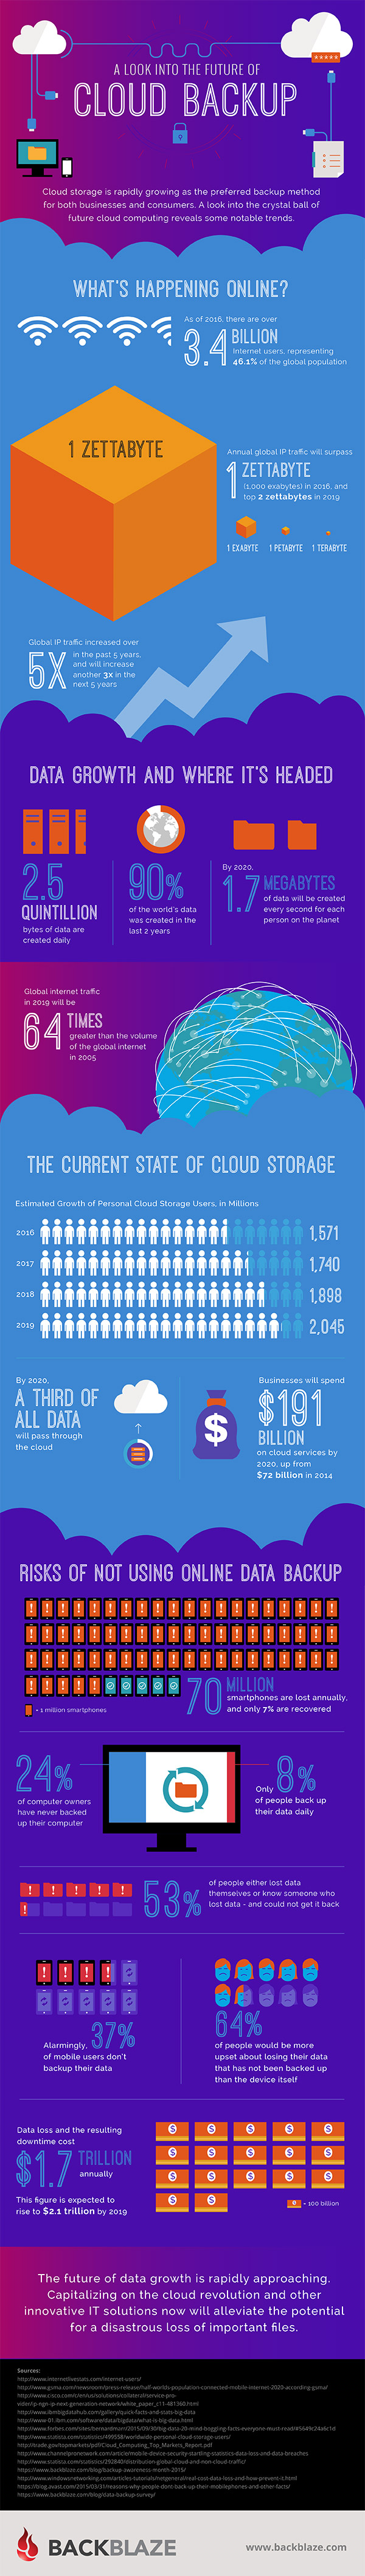 Big Data and the Future of Cloud Storage